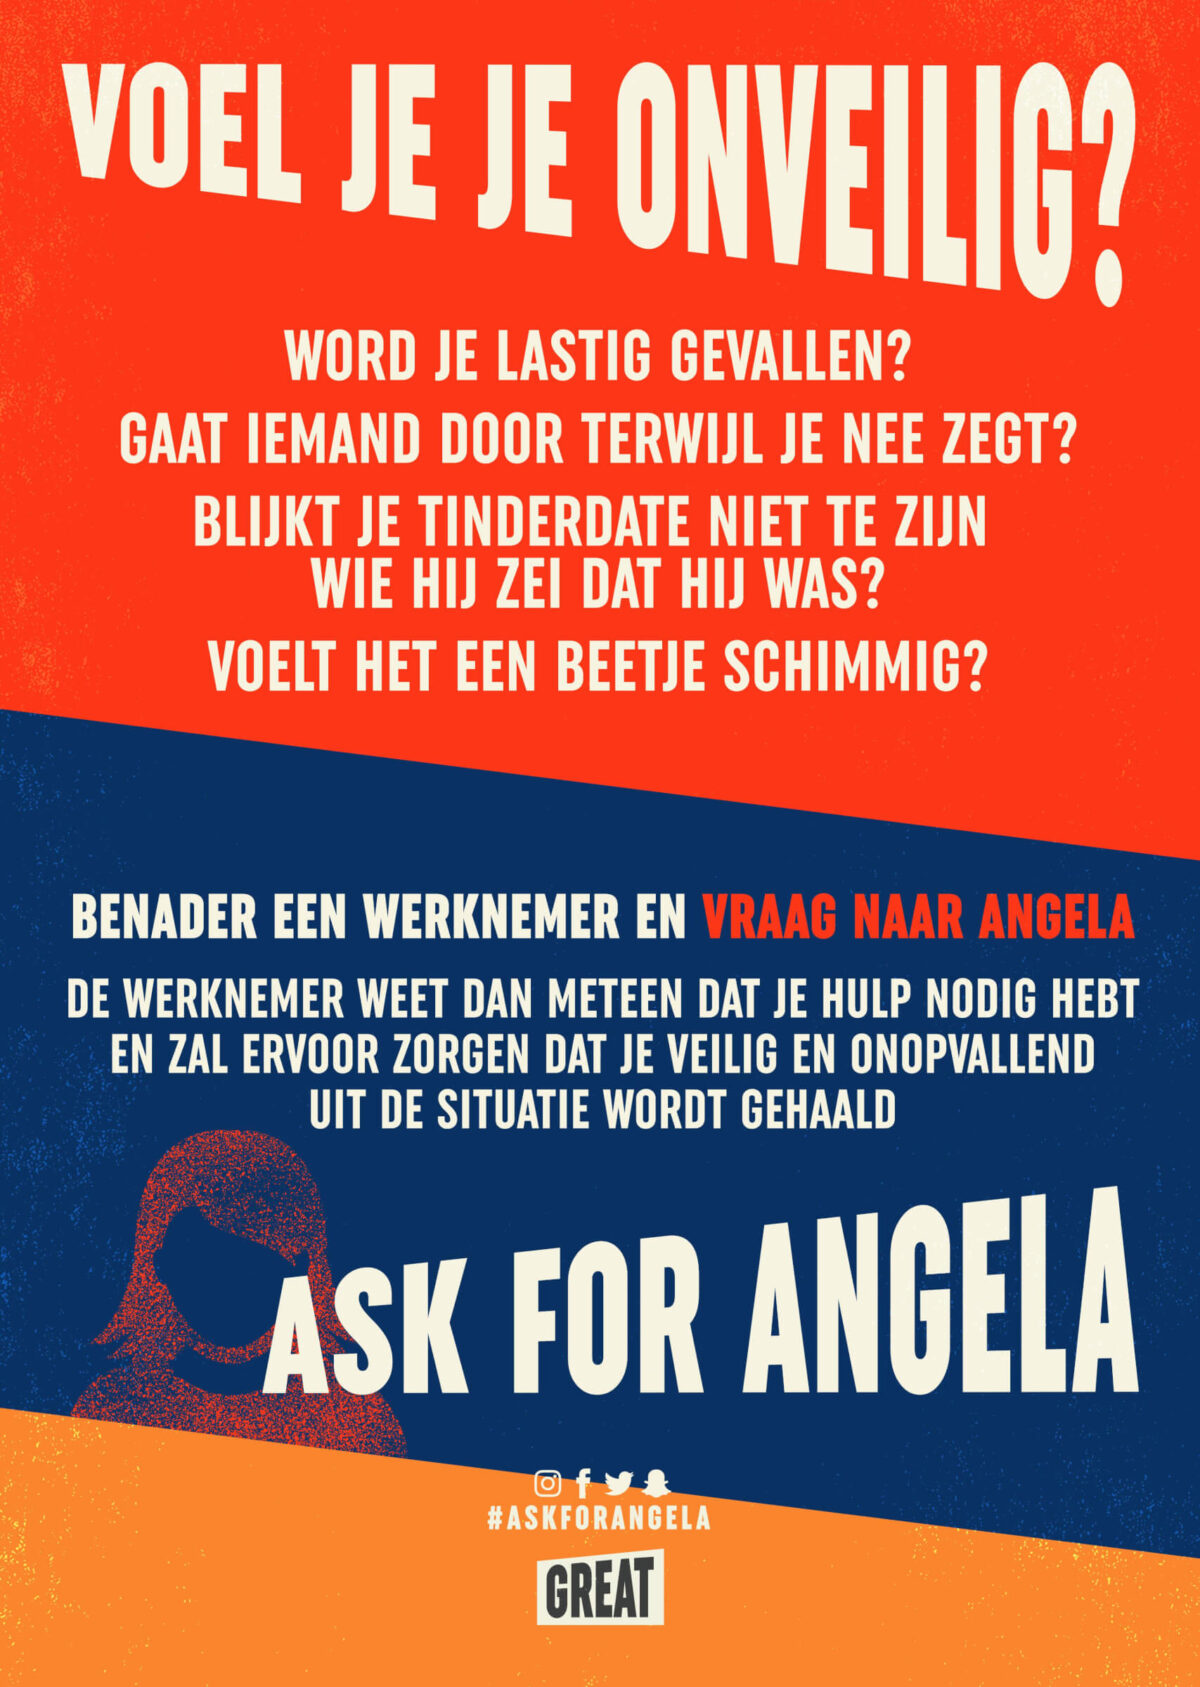 Ask for Angela (poster) - sexinstimidatie - event inspiraiton